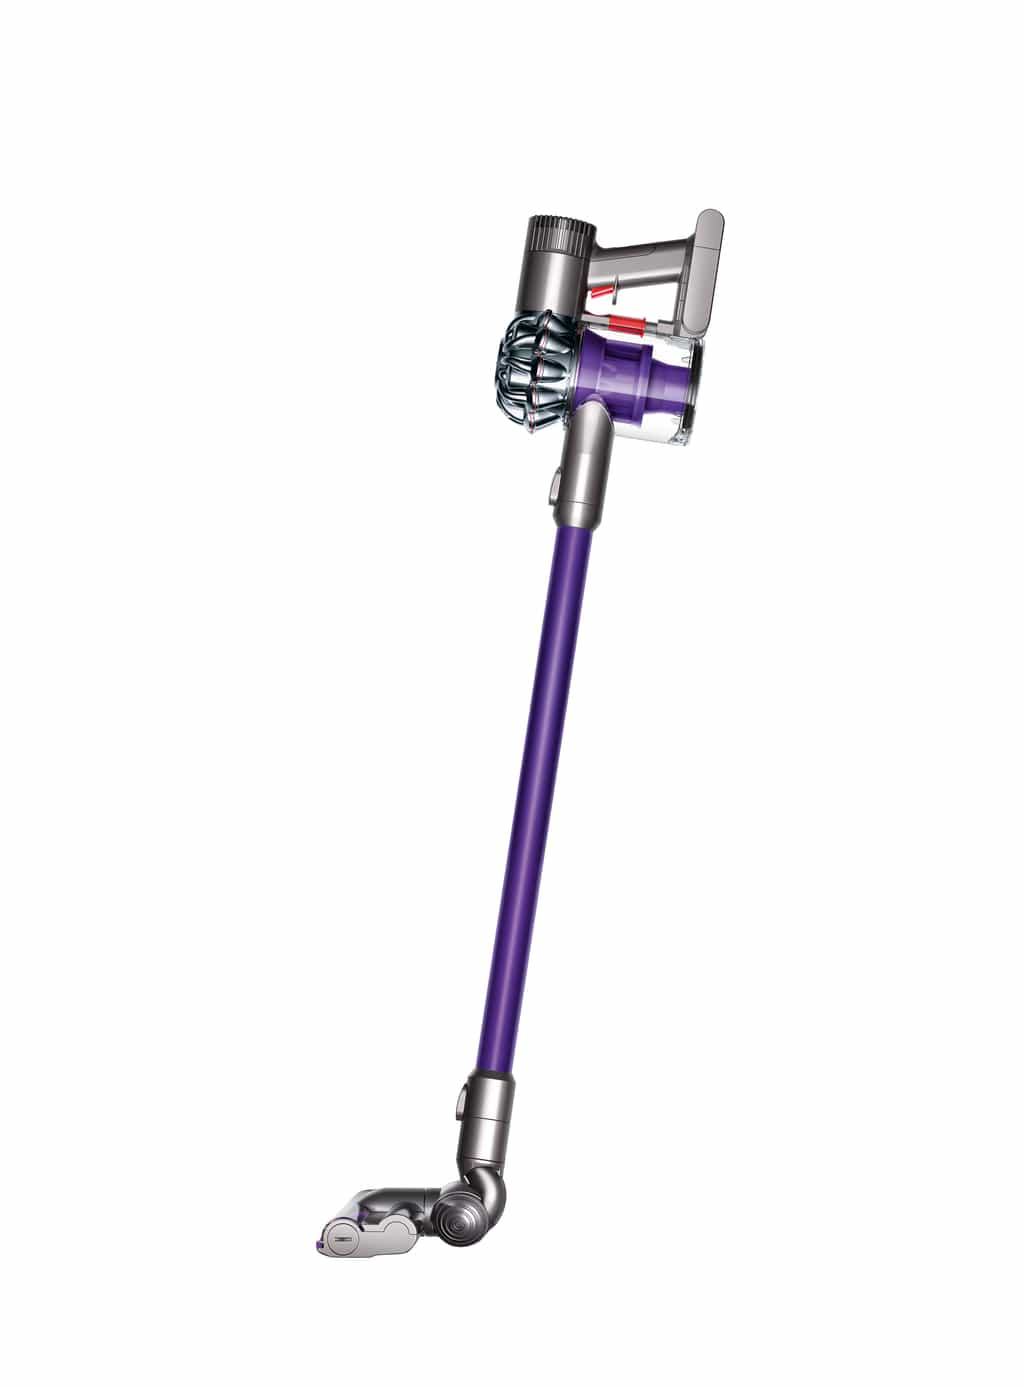 Dyson Introduces the DC59 Cordless Vacuum. Yes. Cordless